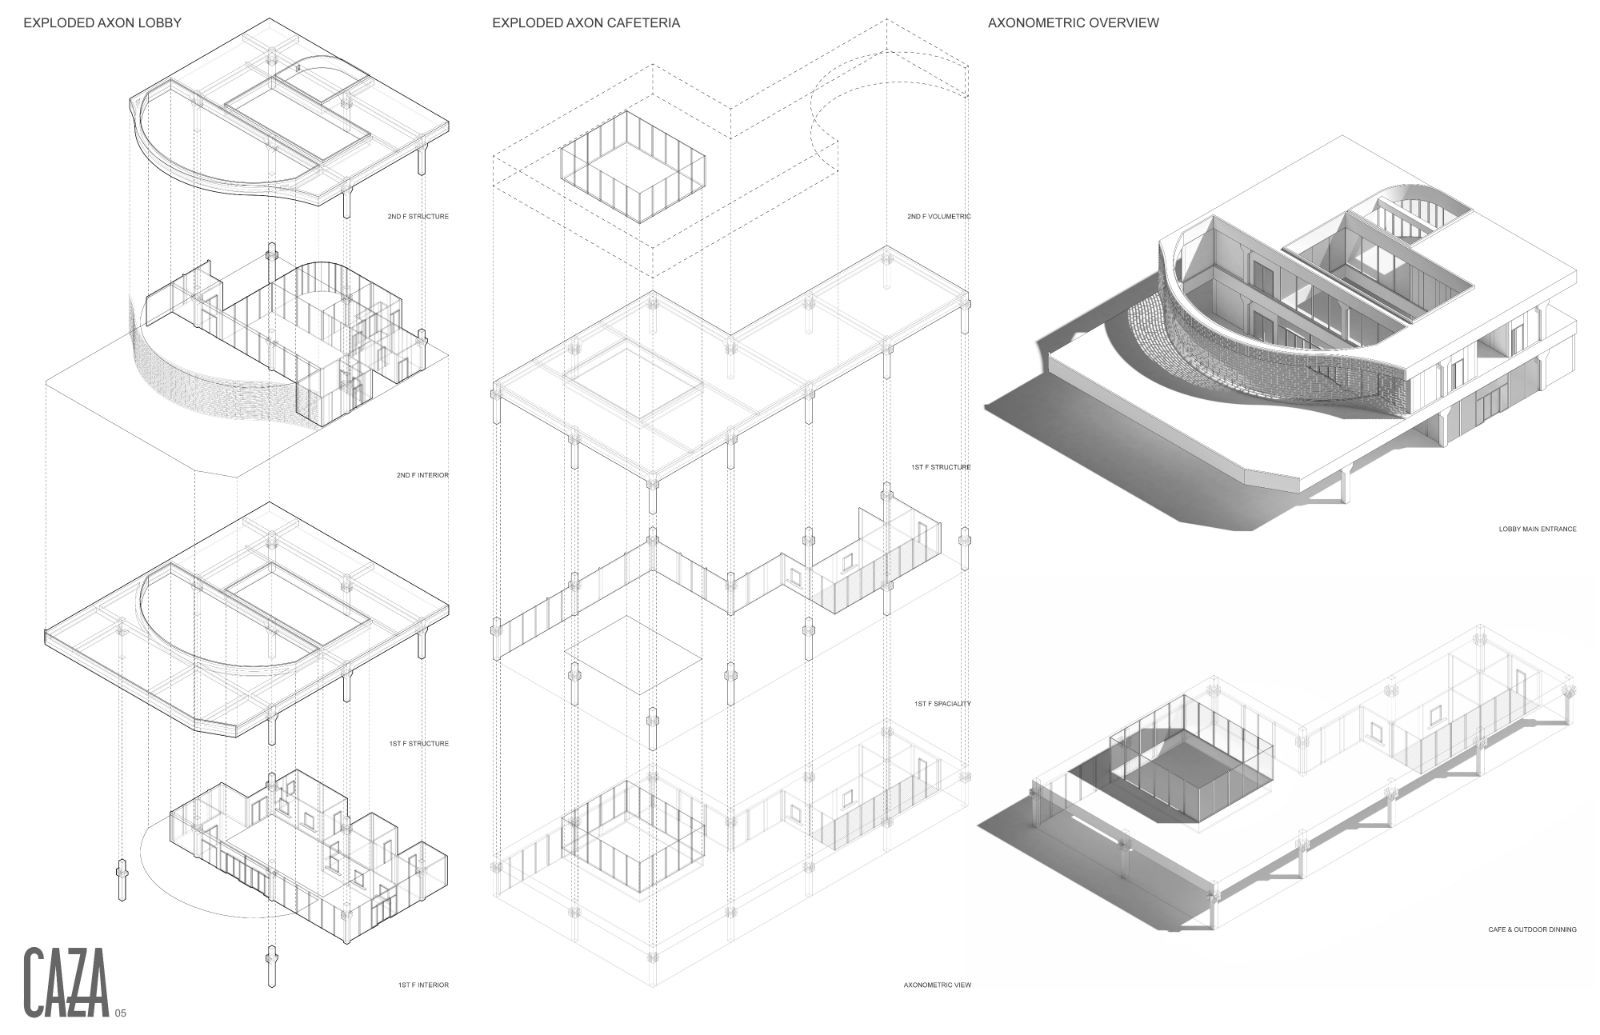 05 Detailed Axonometric Views